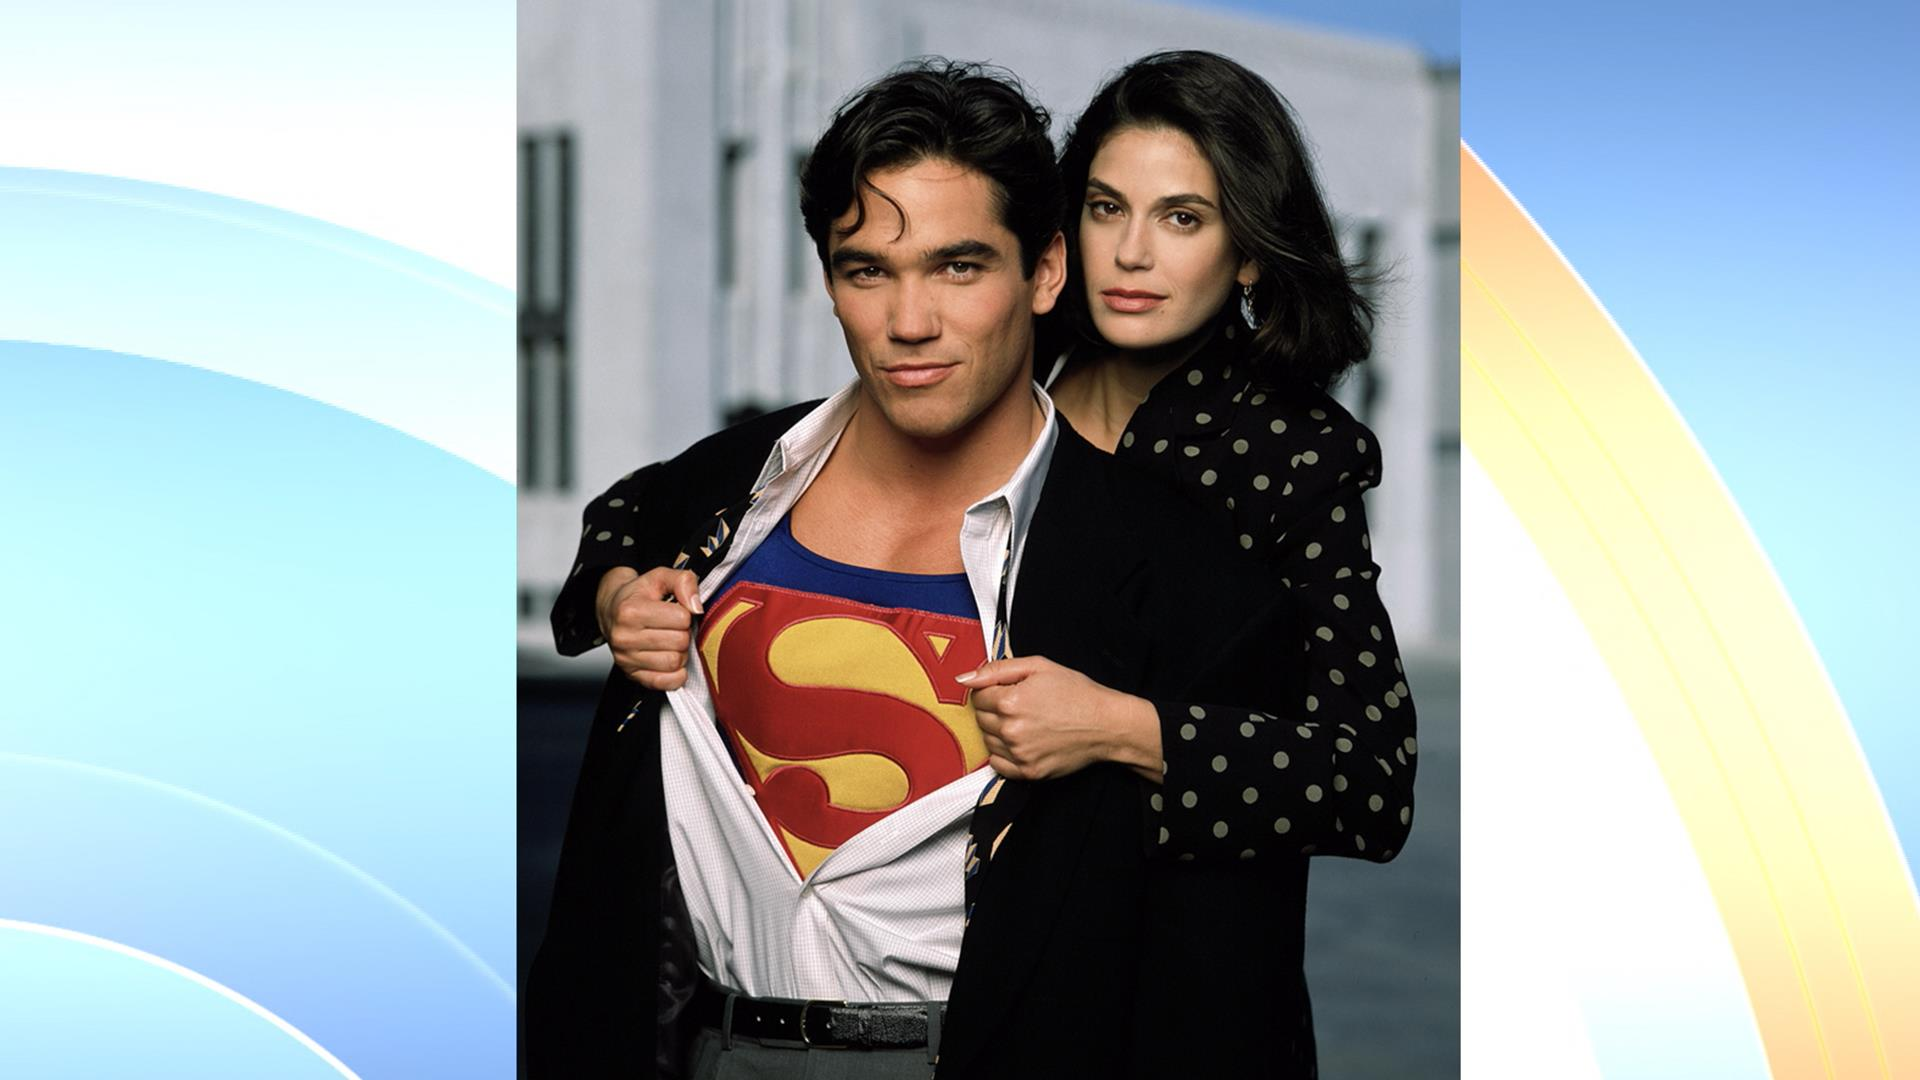 Dean Cain: Teri Hatcher will reunite with me on 'Supergirl ...